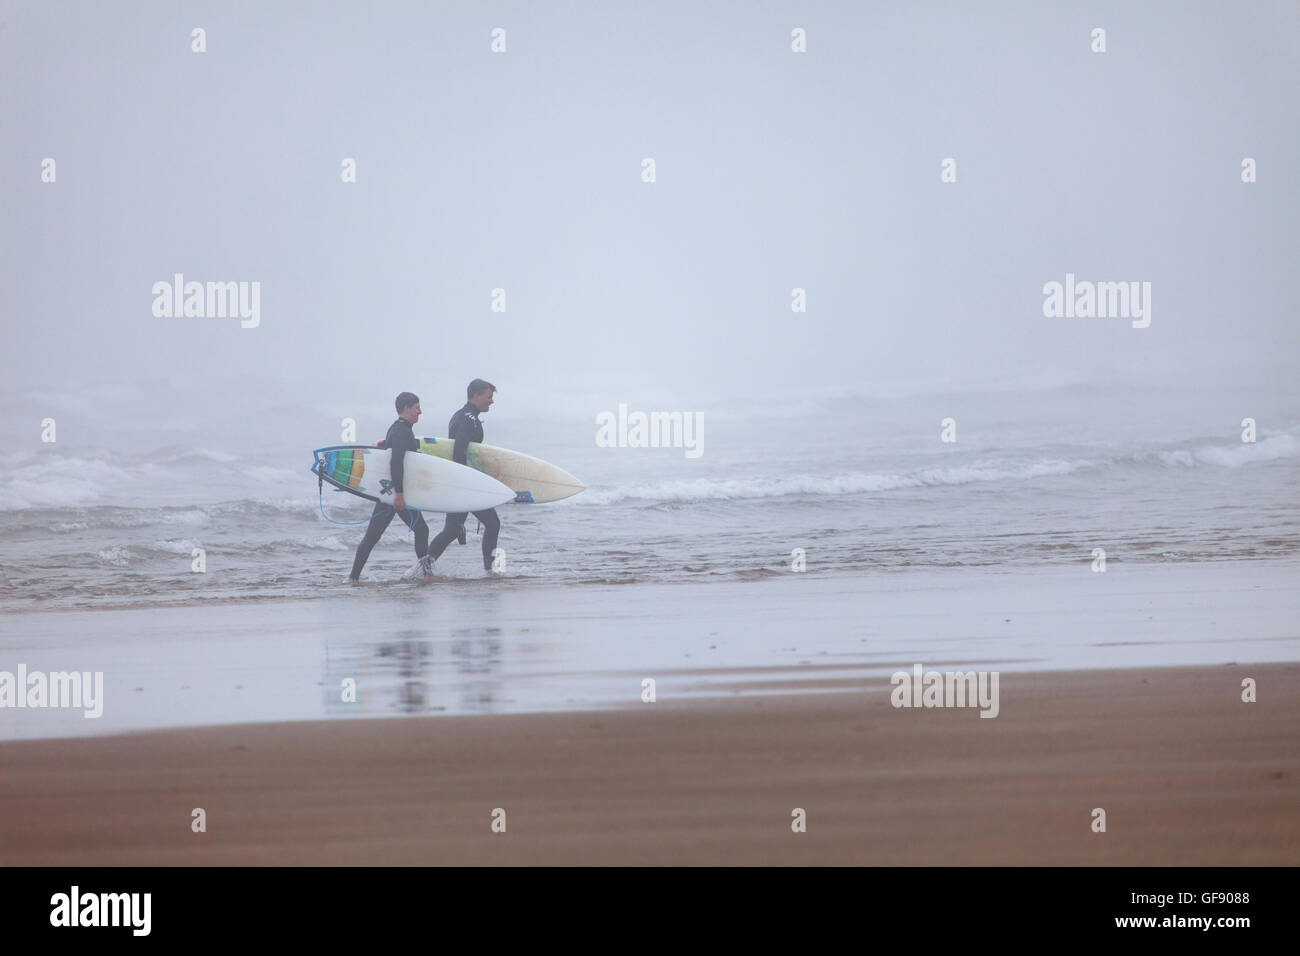 Two cornish surfers returning from the surf at Whitsand Bay located in Cornwall, England, UK as the mist rolls in. Stock Photo